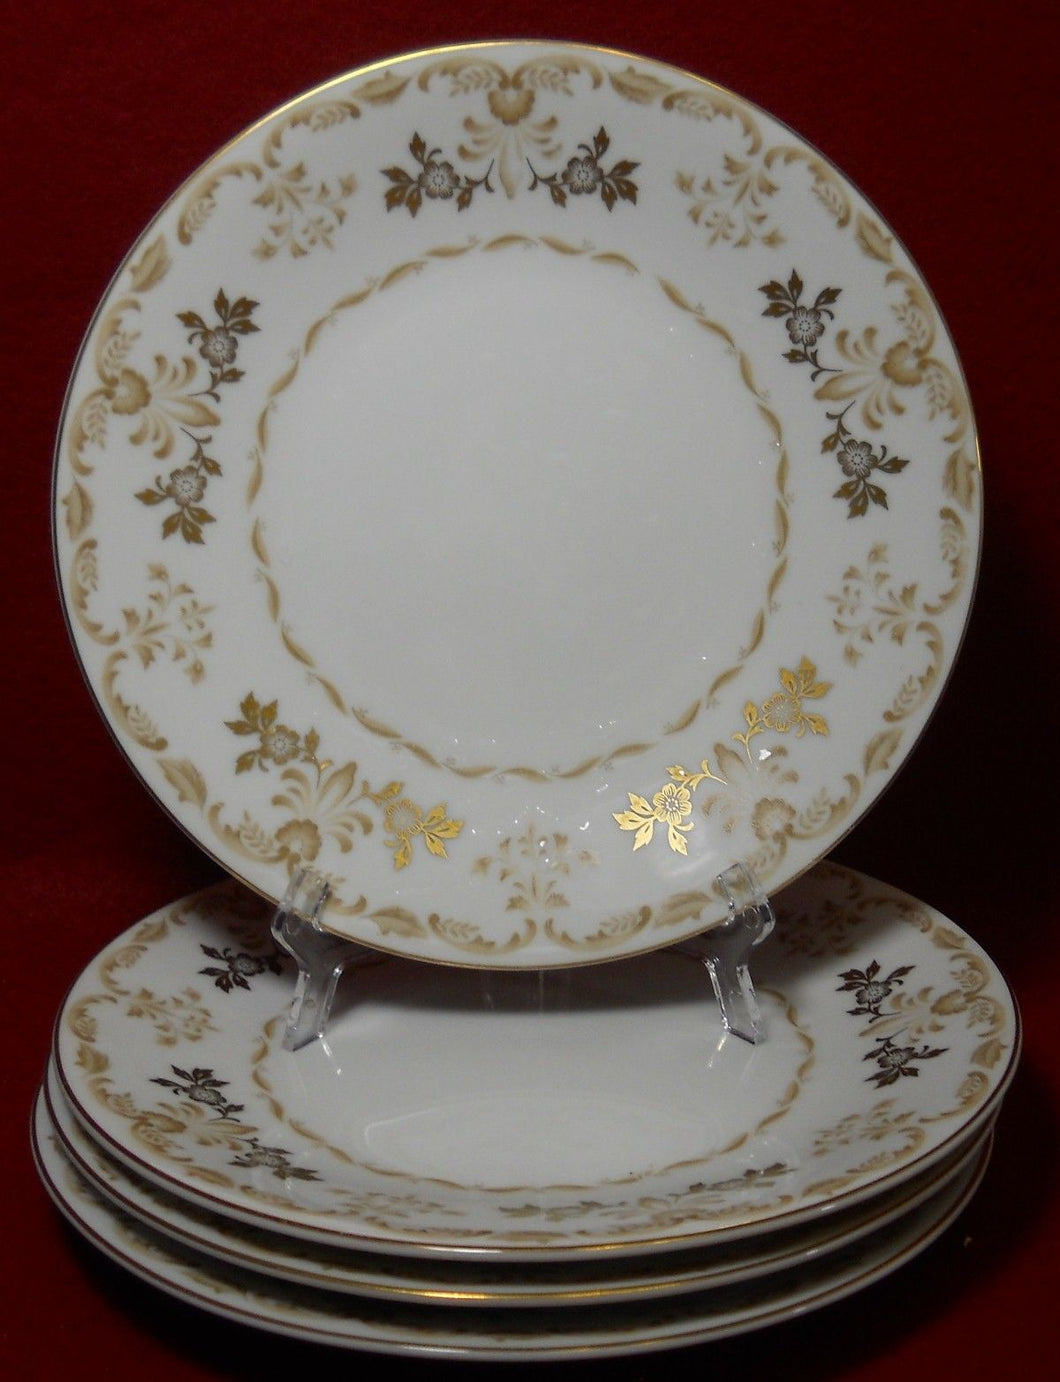 HARMONY HOUSE china CLASSIQUE GOLD pattern Salad Plate - Set of Four (4) 7-3/4